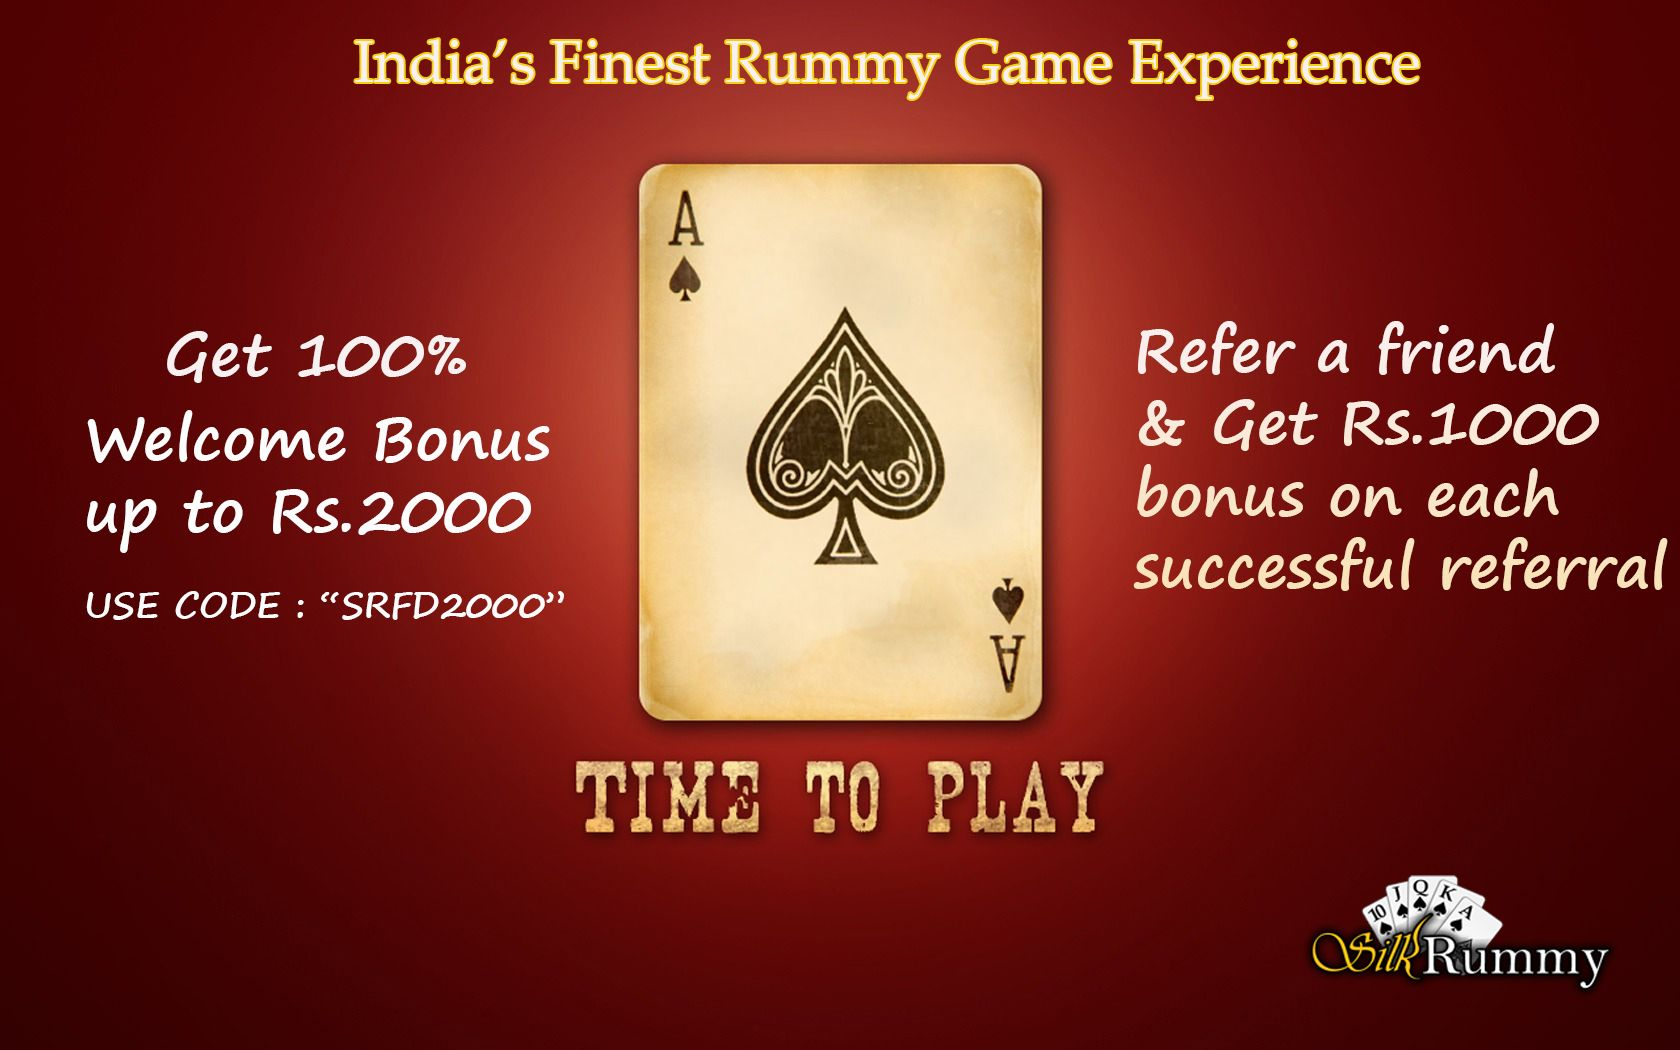 India's Finest Rummy Game Experience Get 100